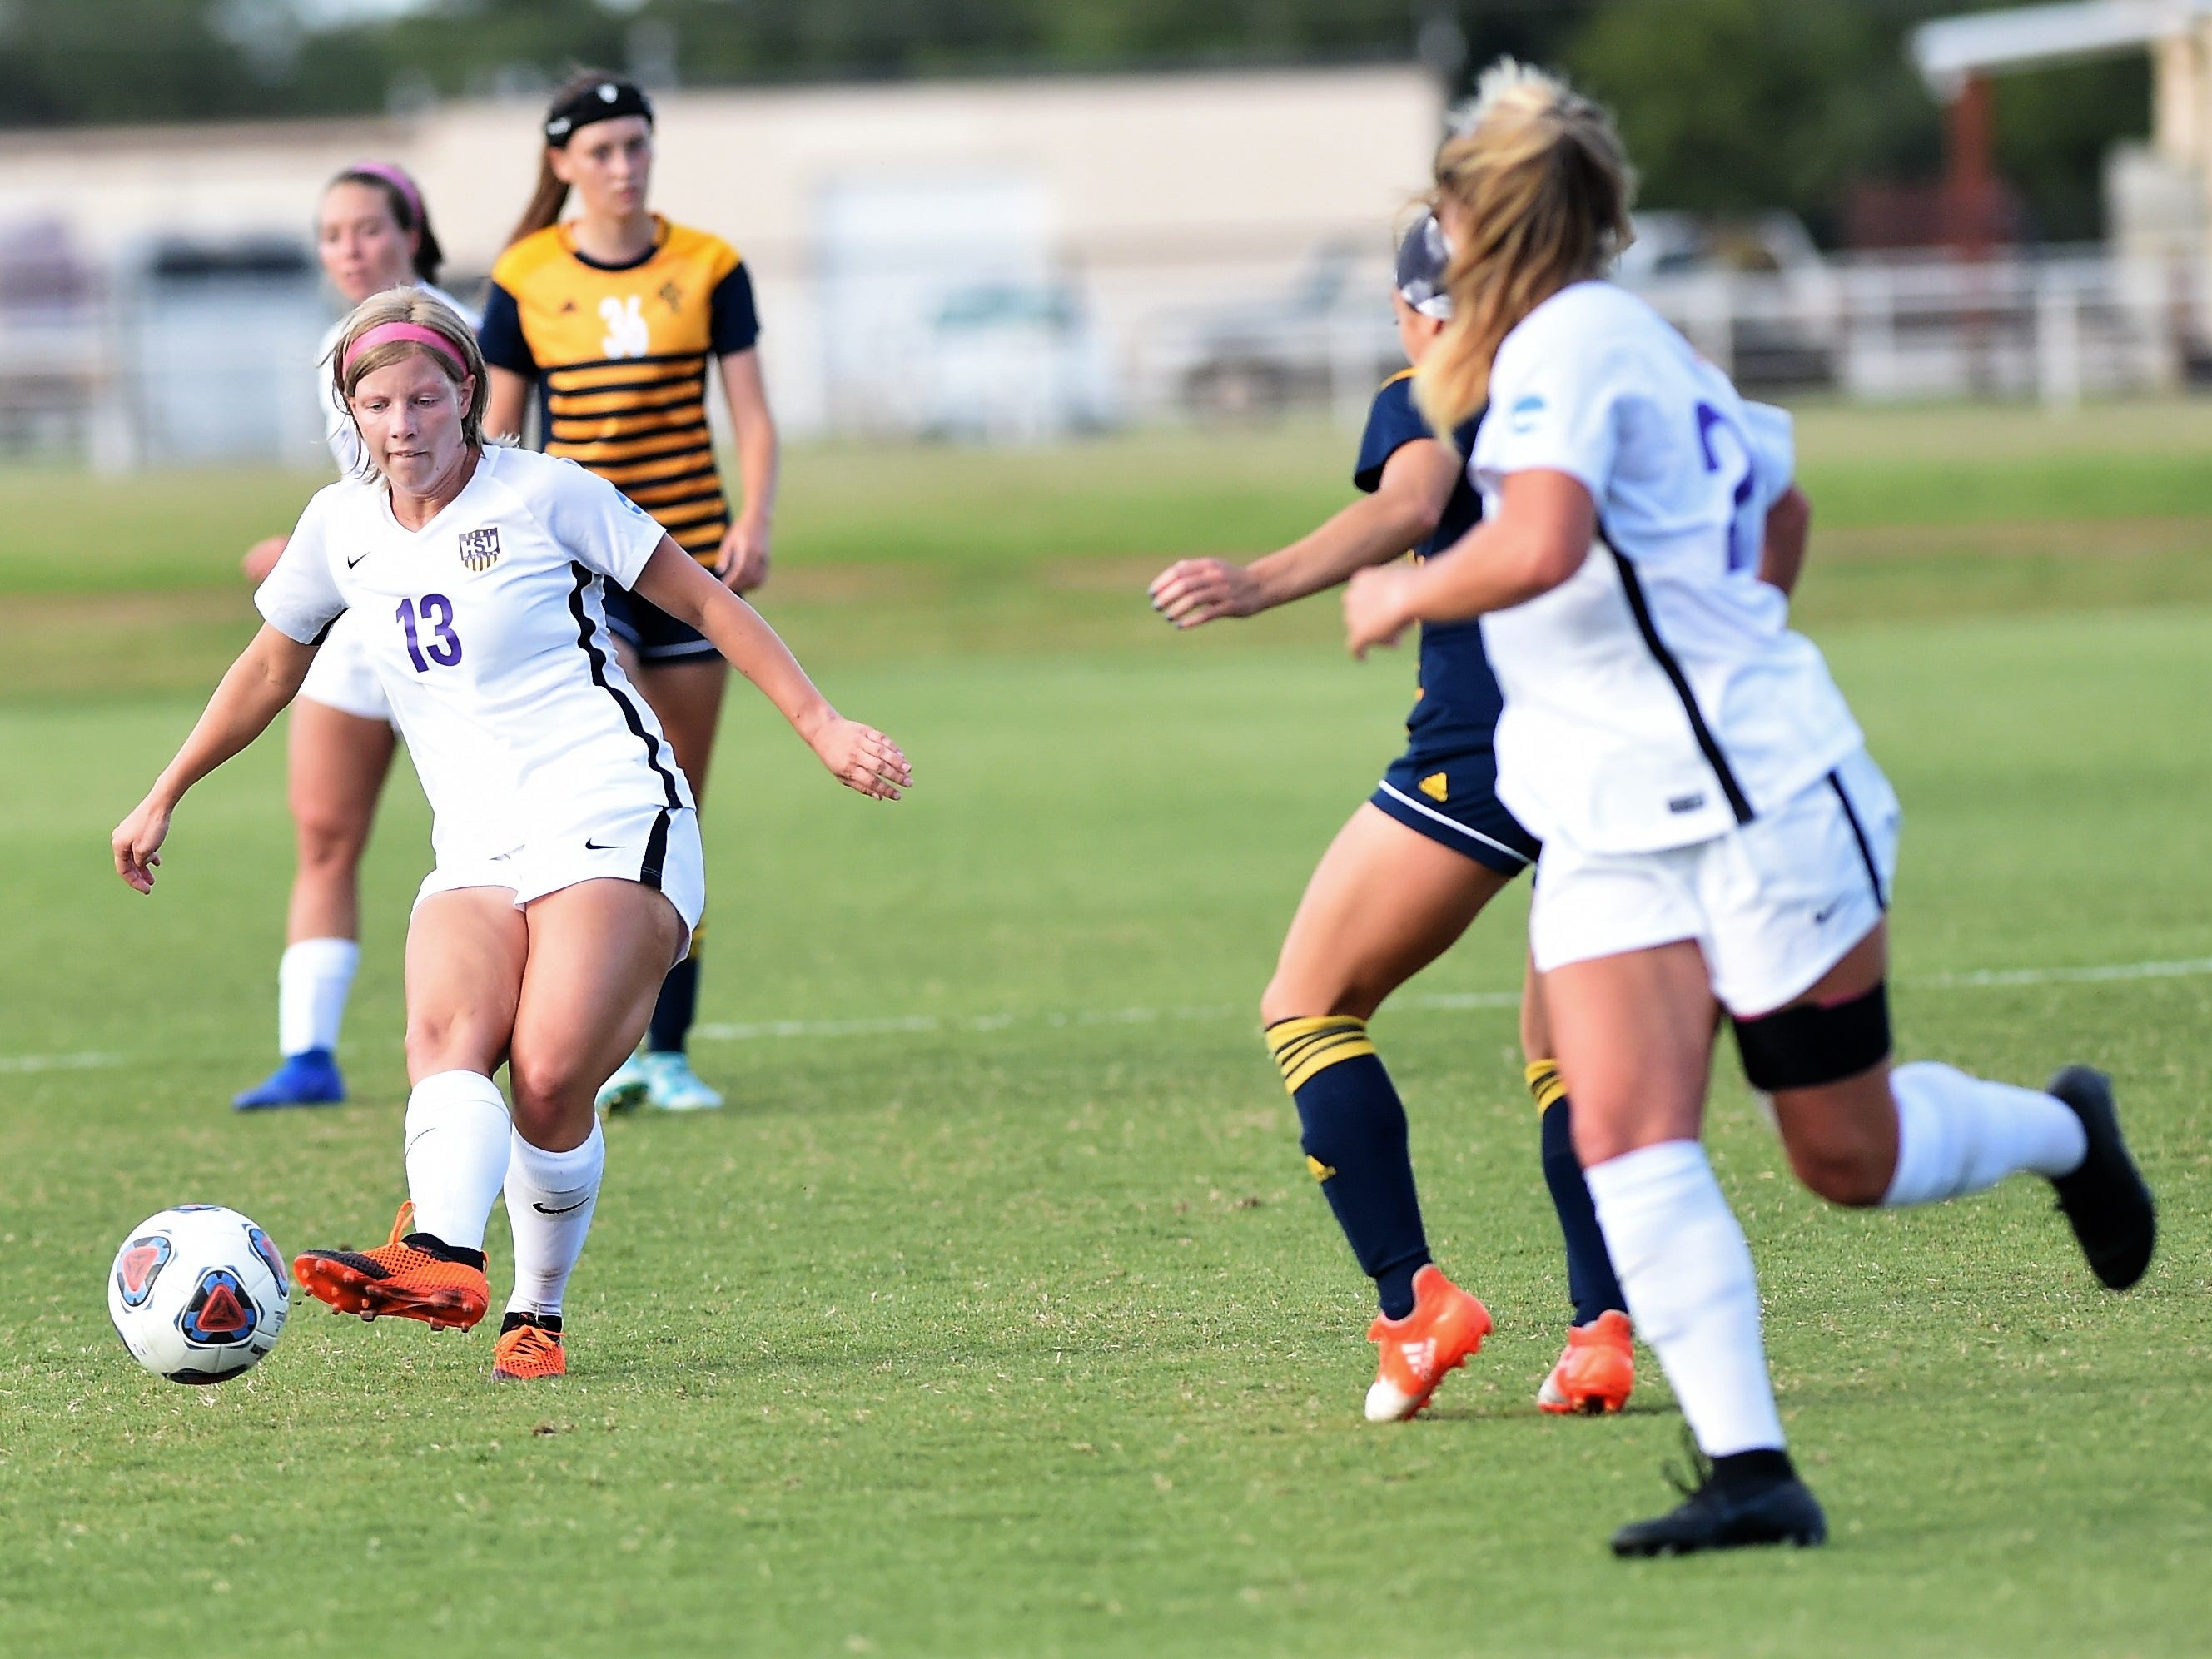 Hardin-Simmons midfielder Josey Meyer (13) passes to Kenne Kessler (28) against Howard Payne at the HSU Soccer Complex on Thursday, Oct. 11, 2018. The Cowgirls won 4-1.